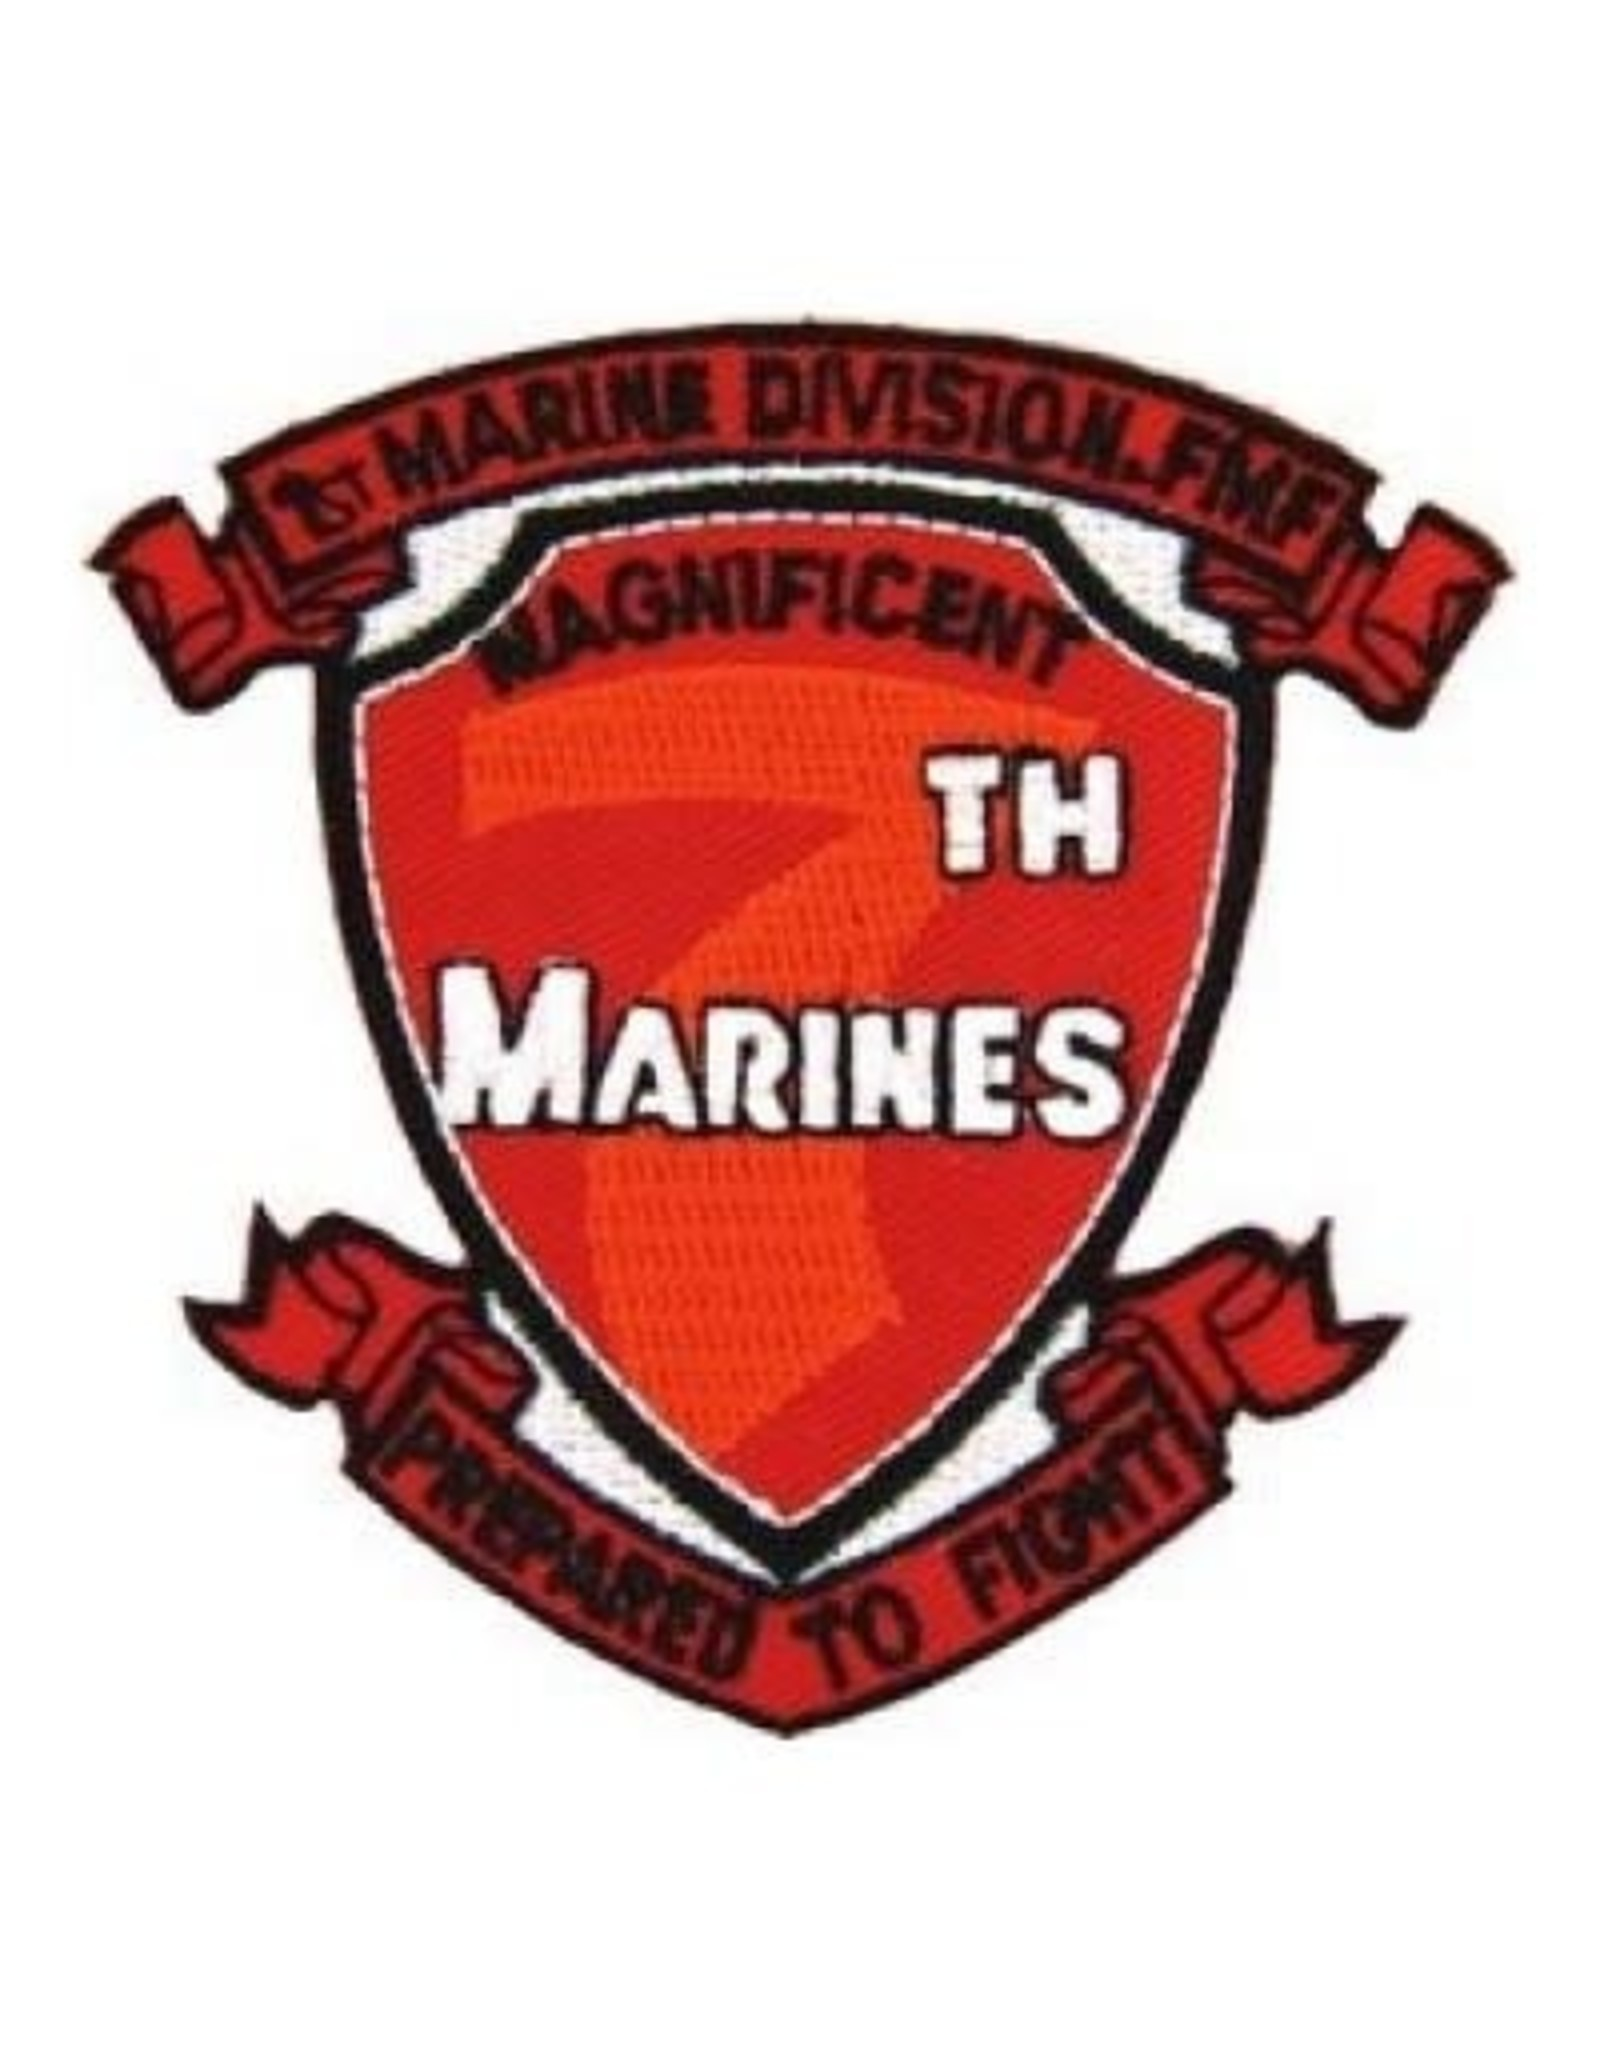 "MidMil Embroidered 7th Marines Emblem Patch 3.2"" wide x 3.1"" high"